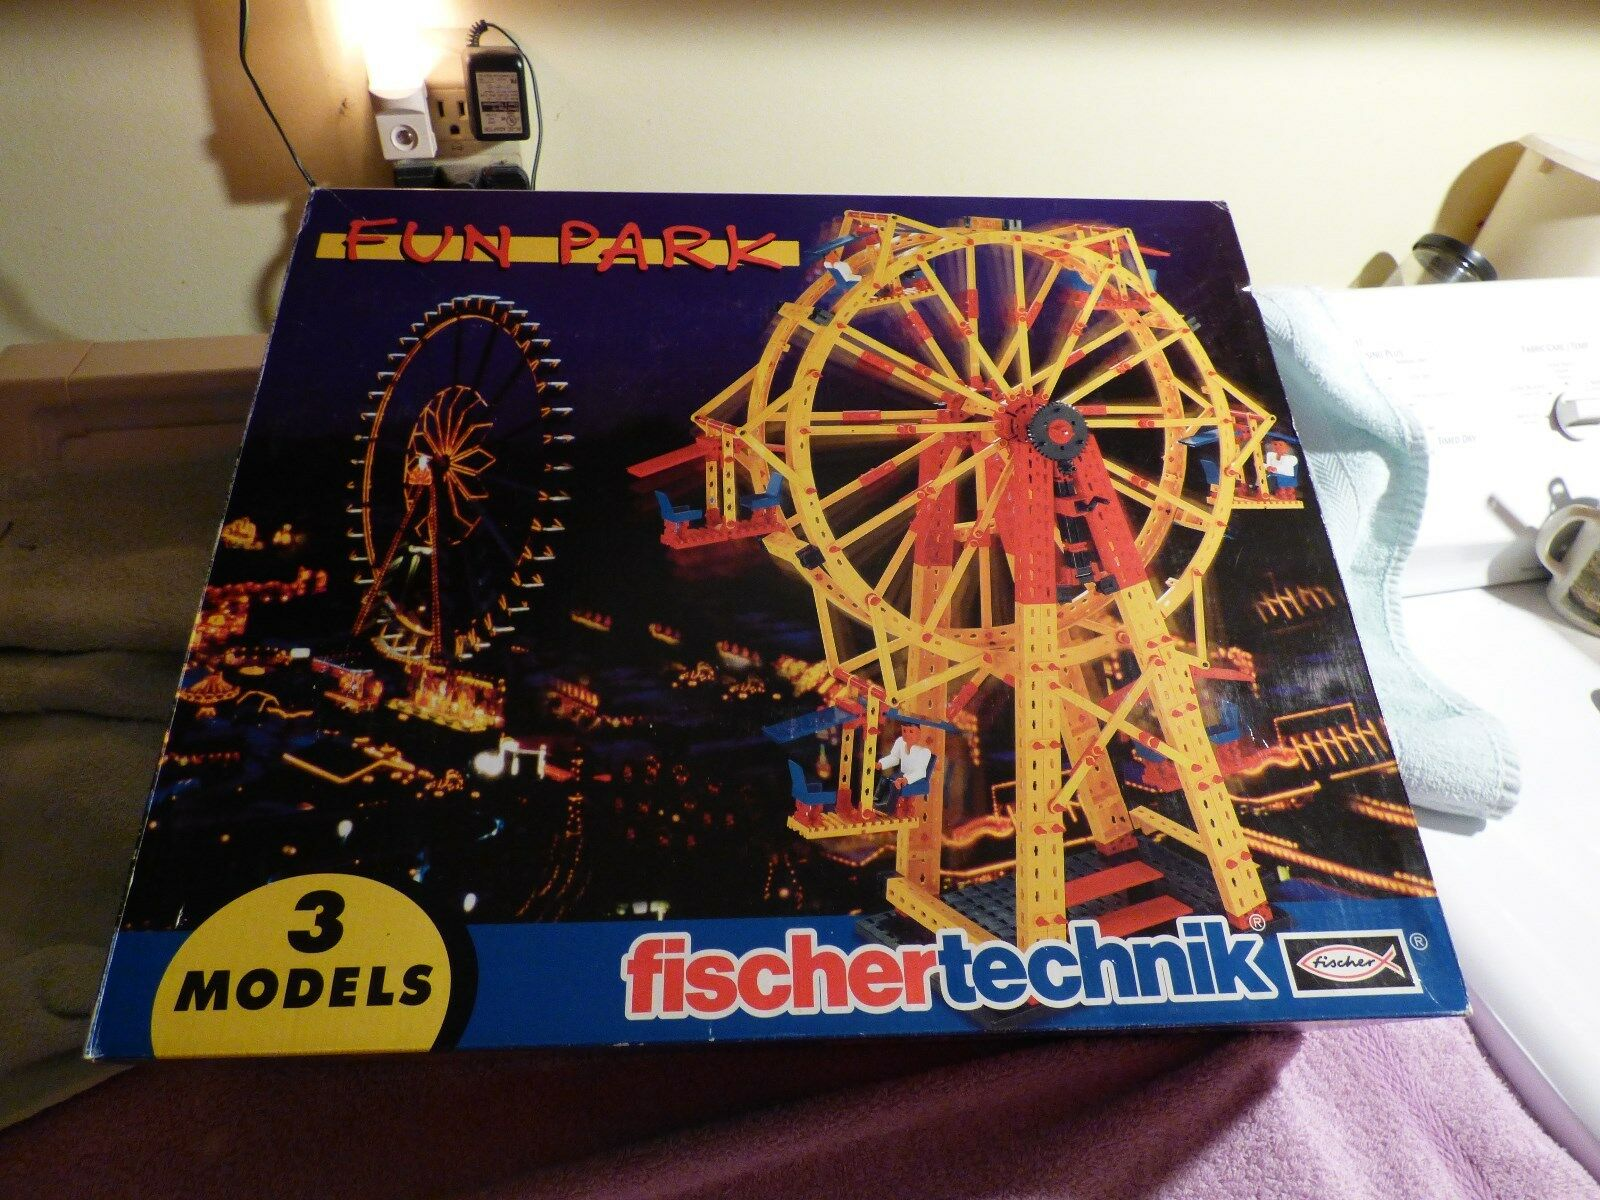 FISCHERTECHNIK  FUN PARK   3 MODELS   GERMANY   NEW IN BOX